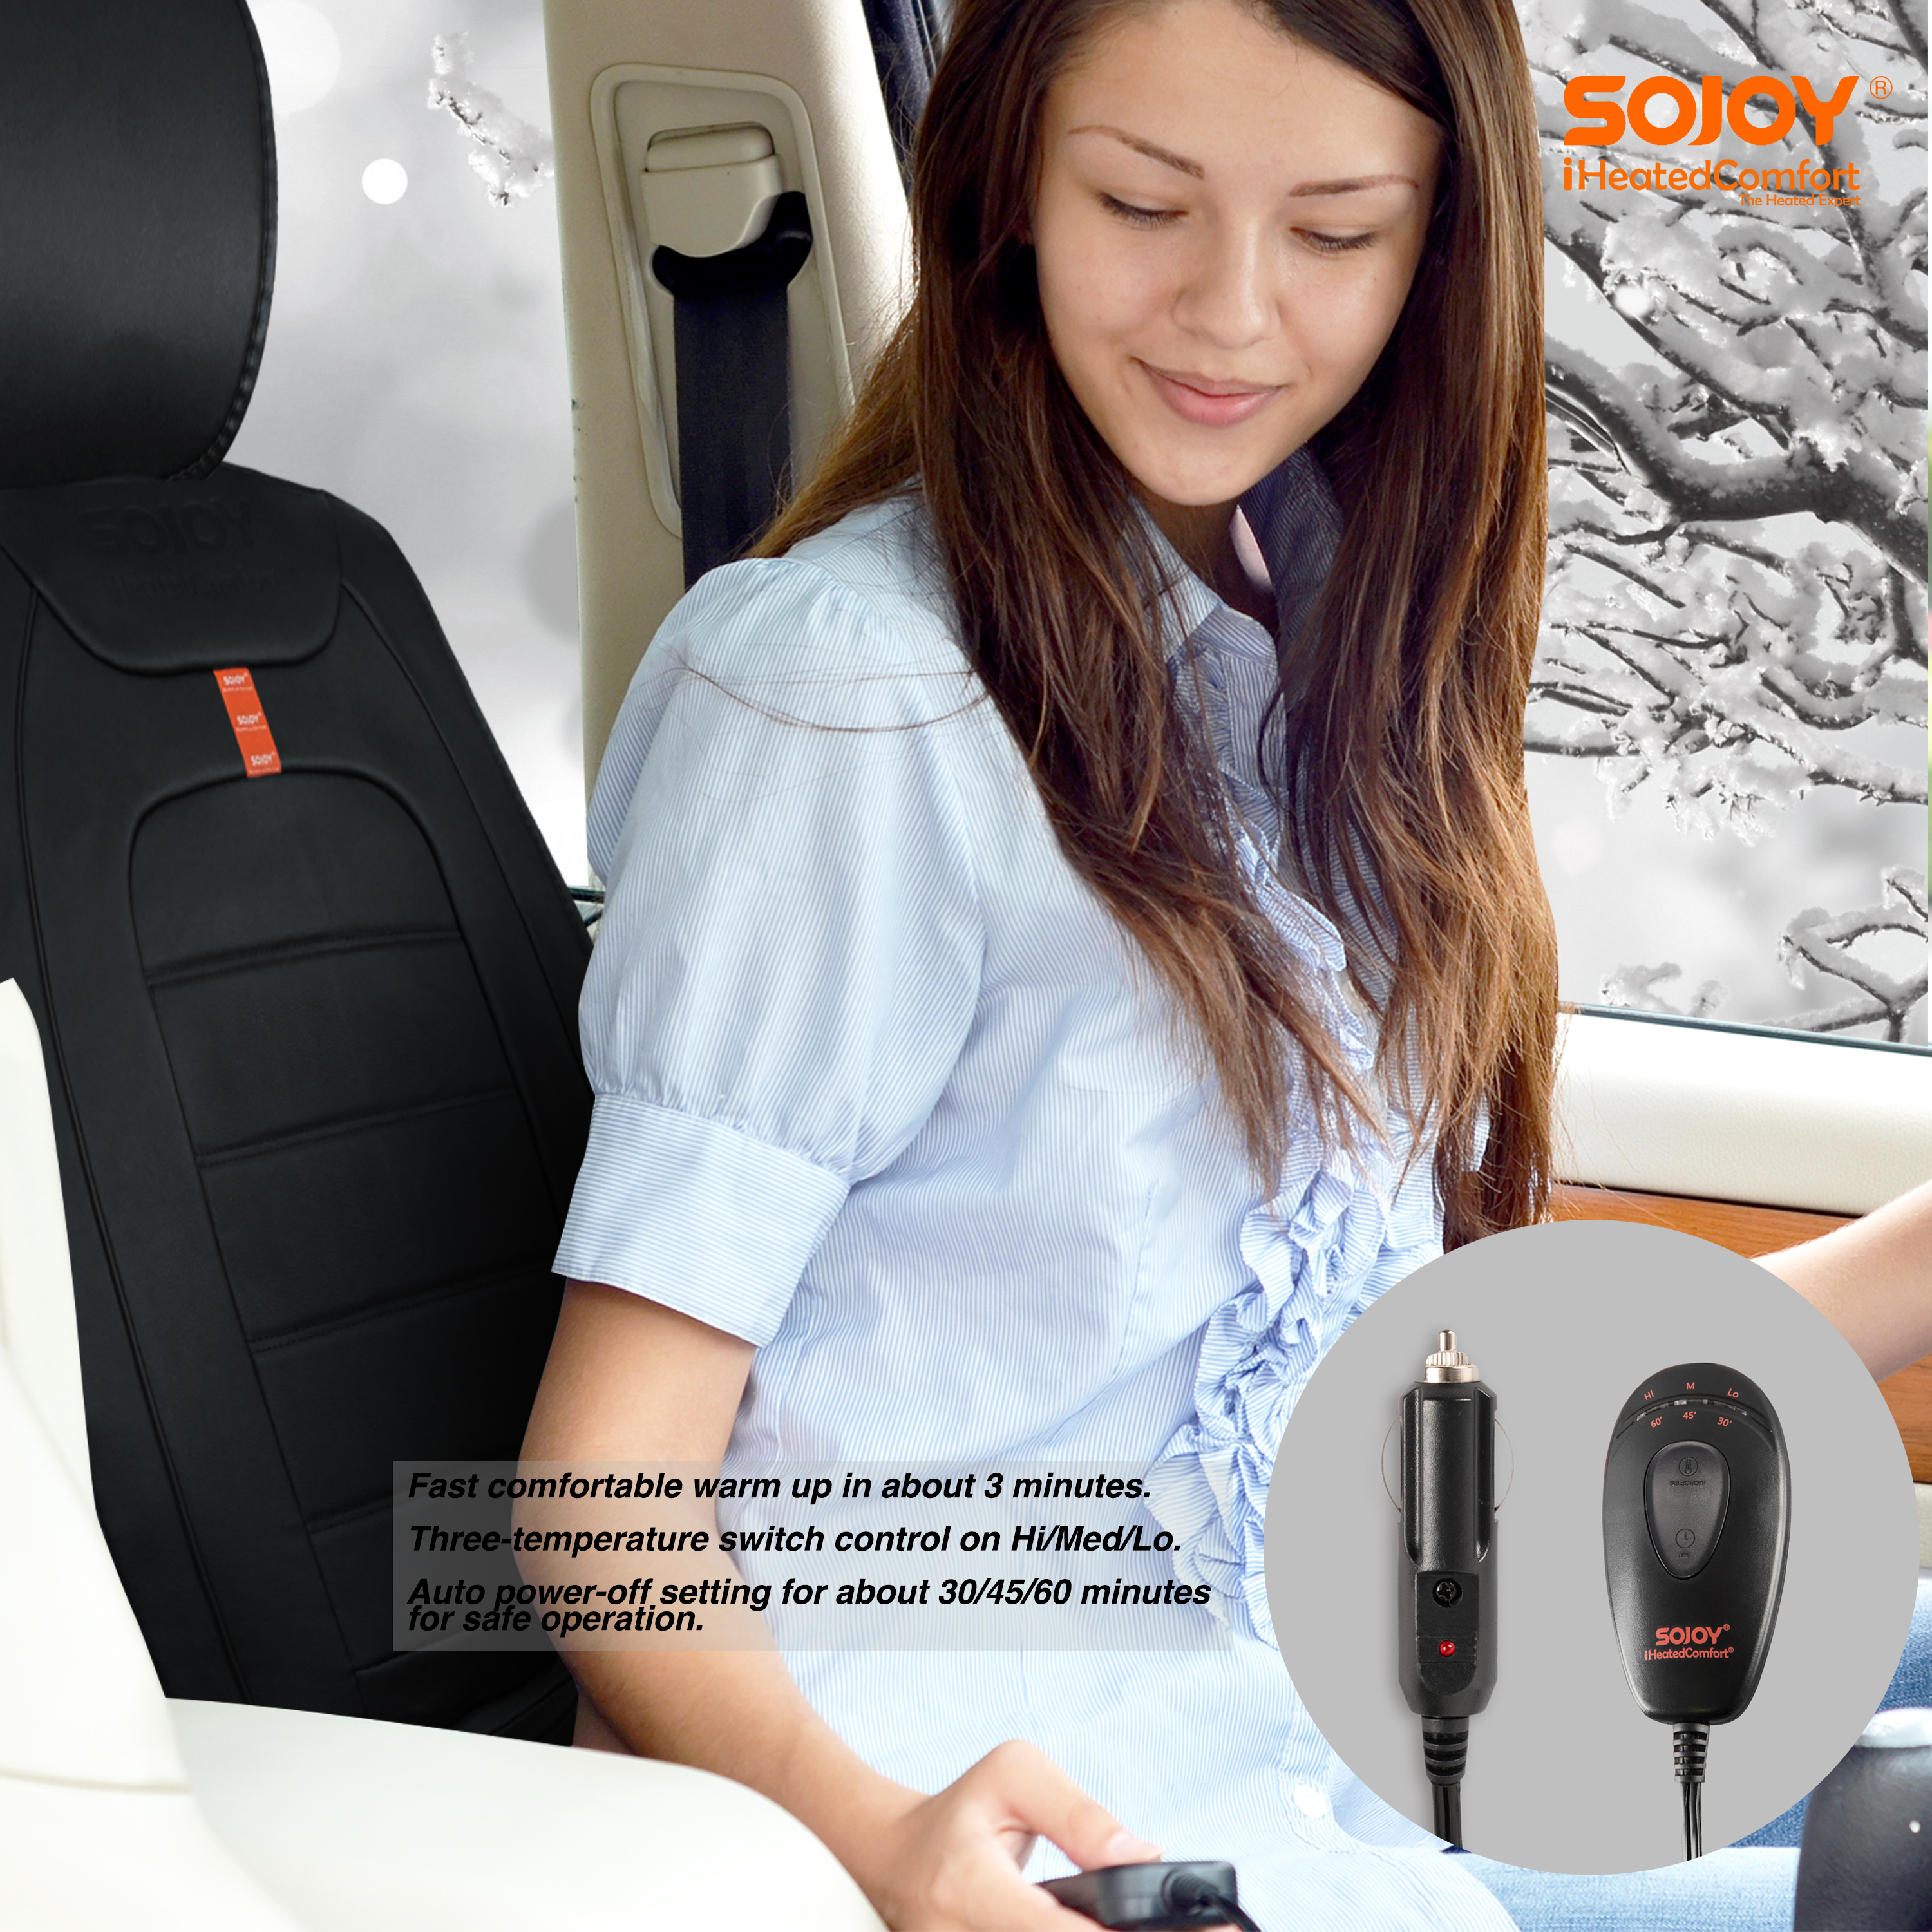 45 Minute Timer,Leather SJ219R031 Sojoy Universal Luxury DC 12V Heated Smart Multifunctional Car Seat Heater Heated Cushion Warmer Heated High//Low Temp Switch Black